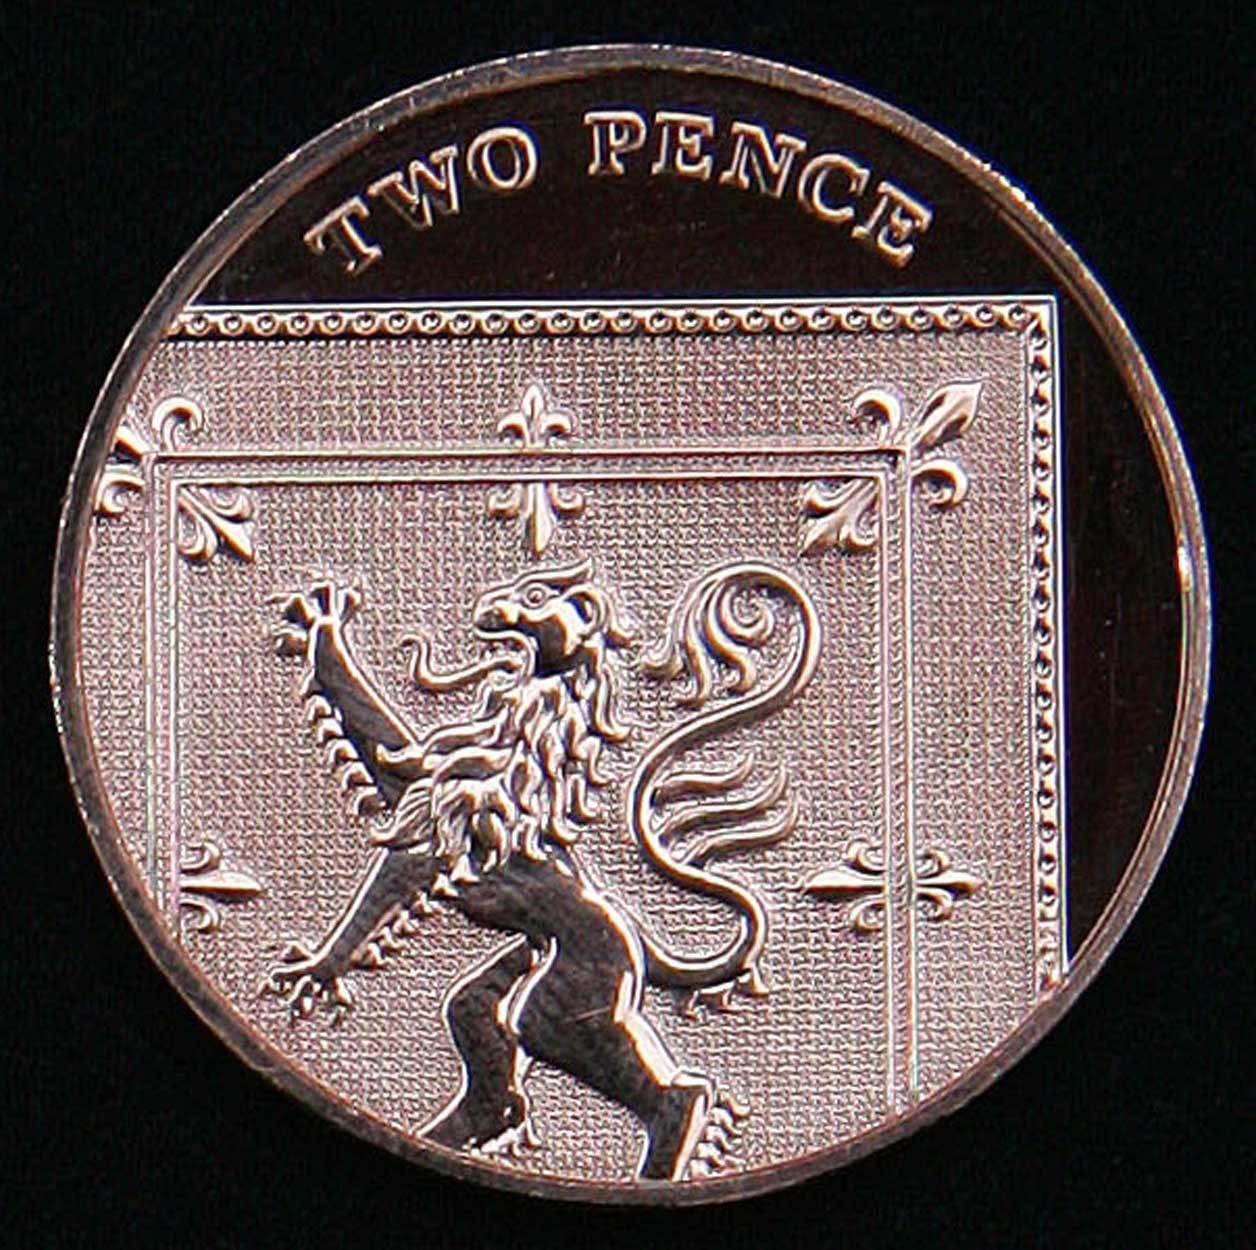 Two pence coin.jpg